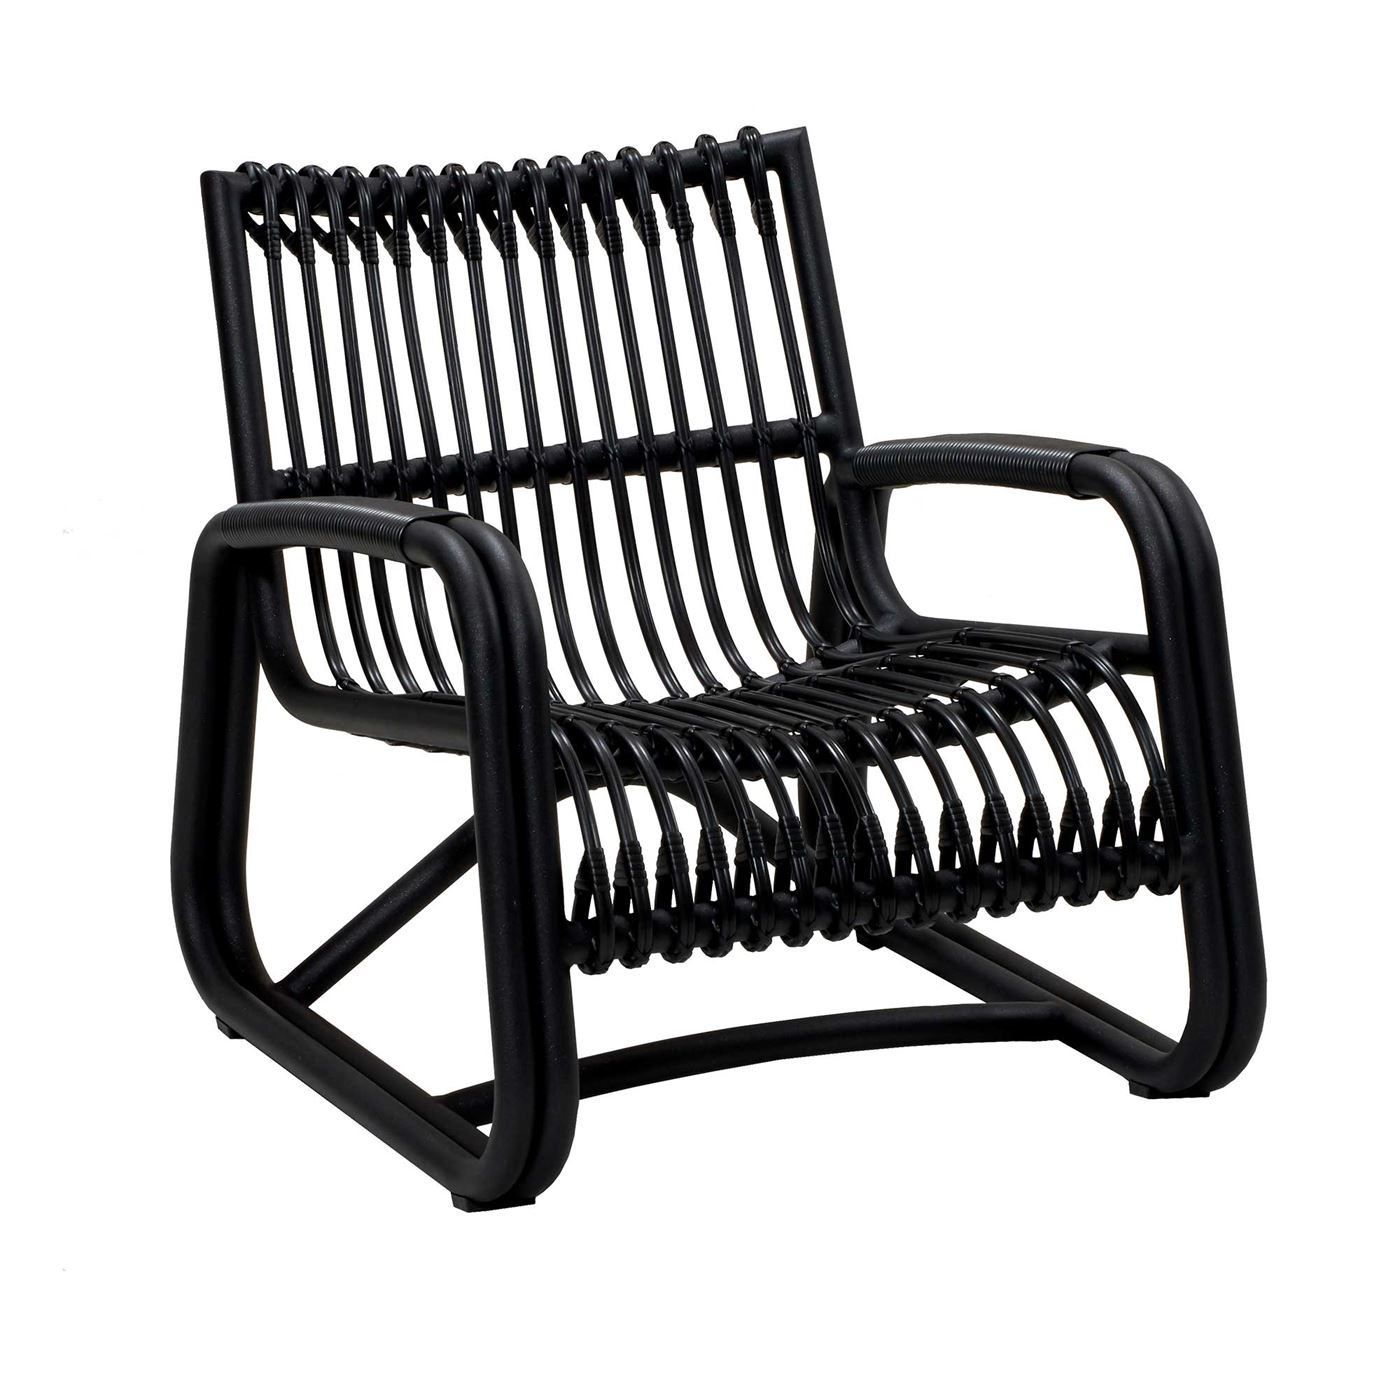 Cane-Line Curve Garden Lounge Chair in Lava Grey